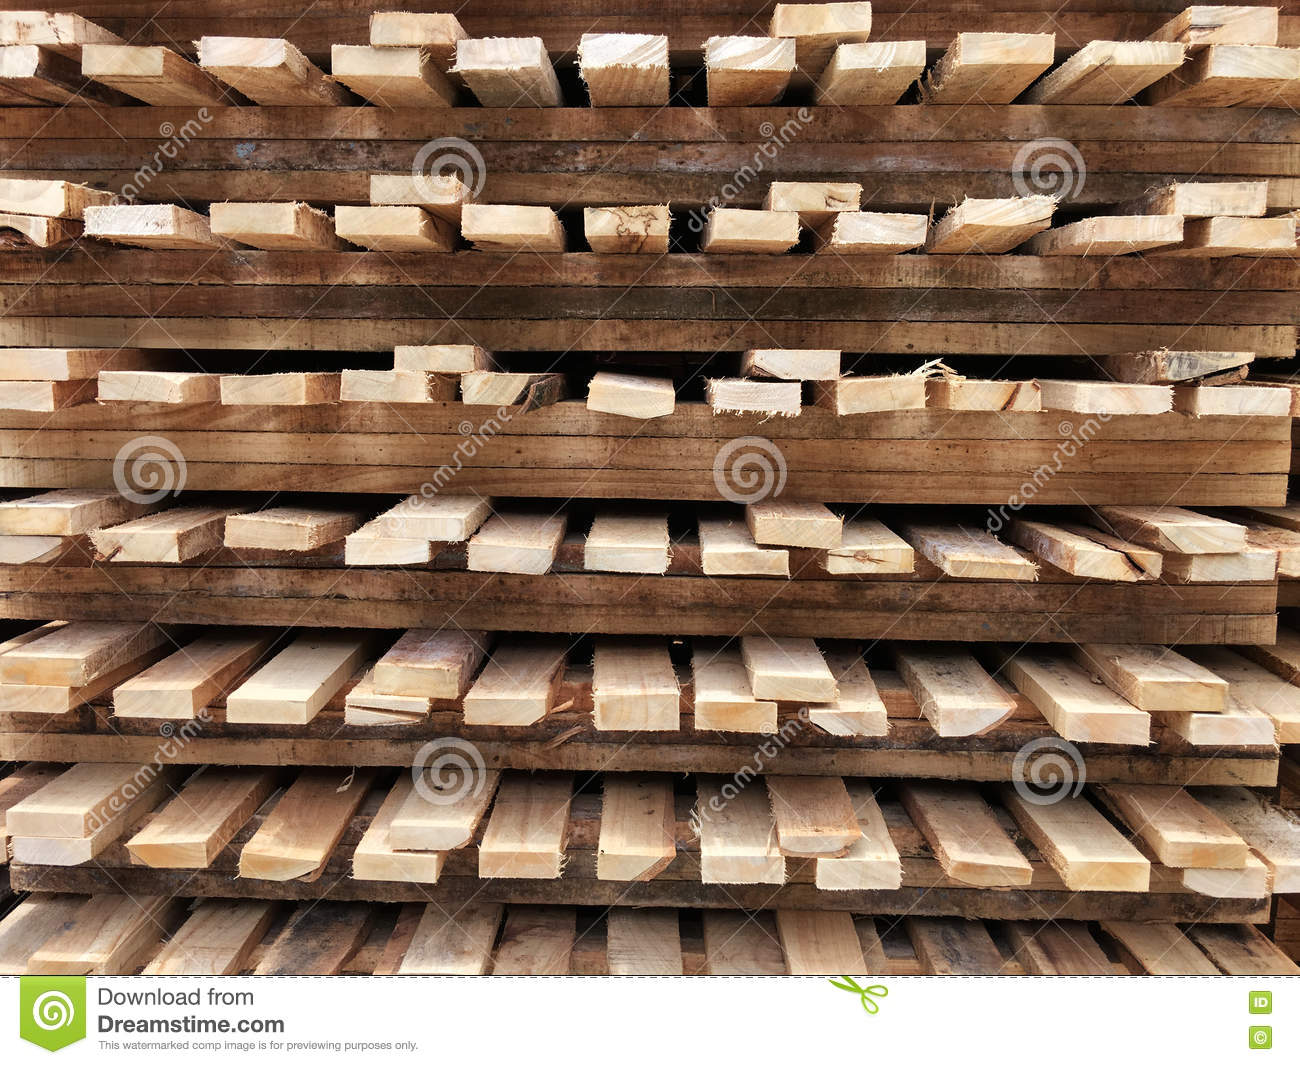 Wood Pallet Stock Photo Image Of Timber Industry Pallets